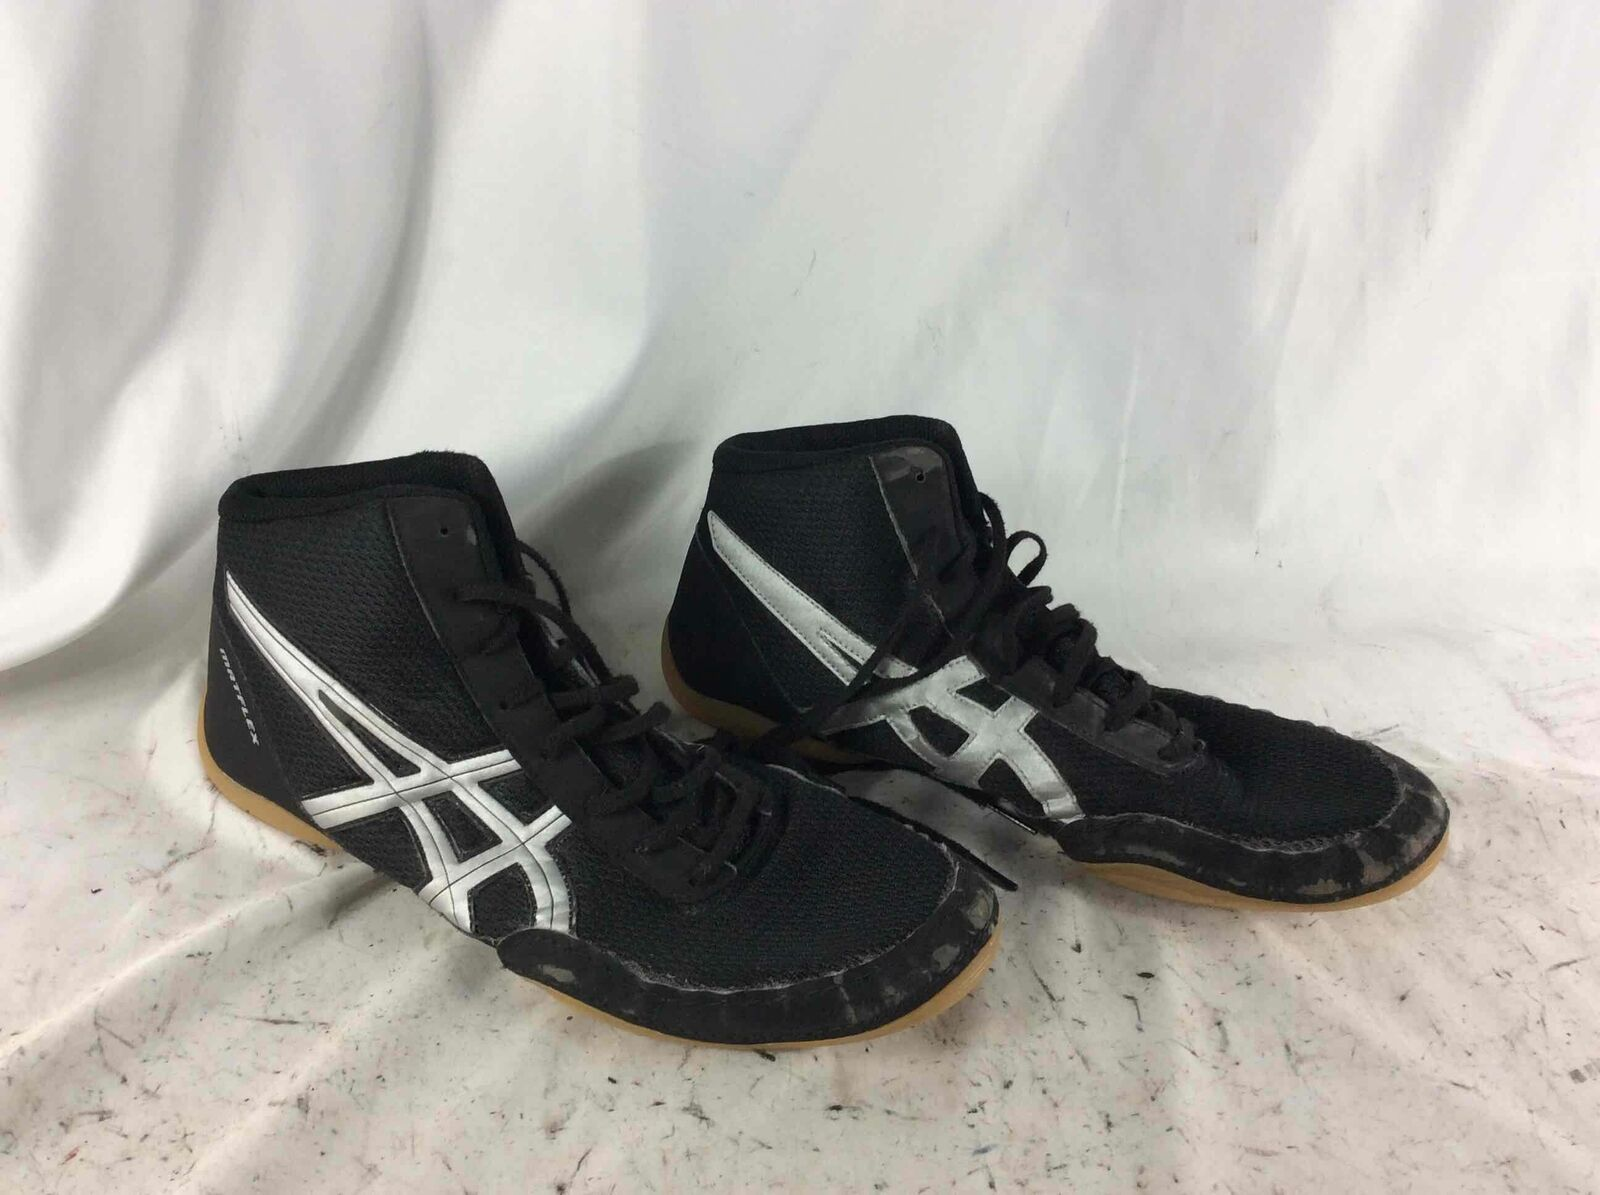 Primary image for Asics MatFlex 12.0 Size Wrestling Shoes